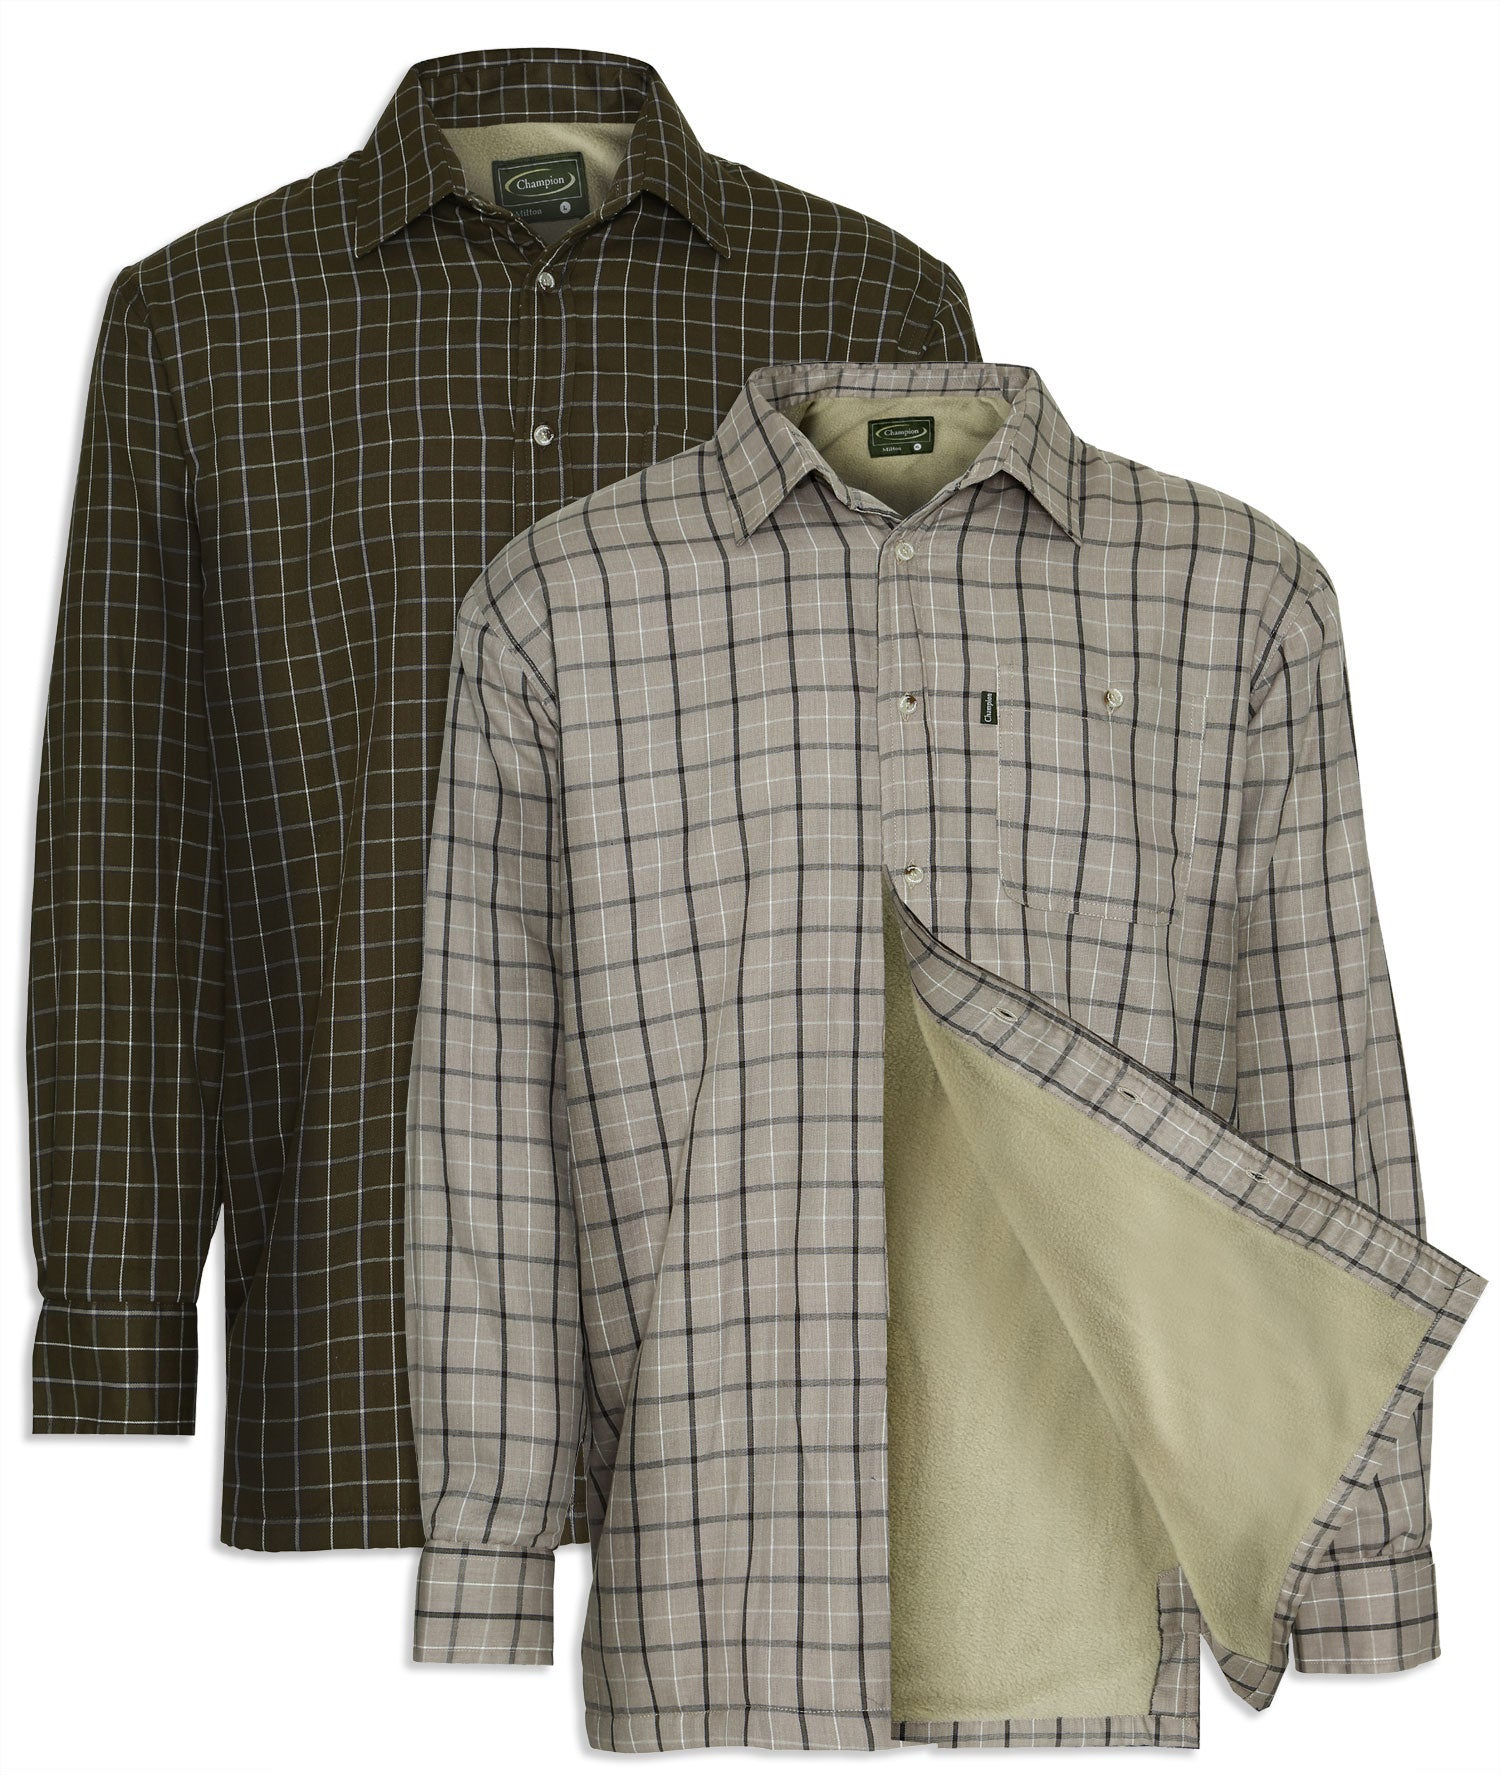 Champion Milton Micro Fleece Lined Shirt in colours green and taupe